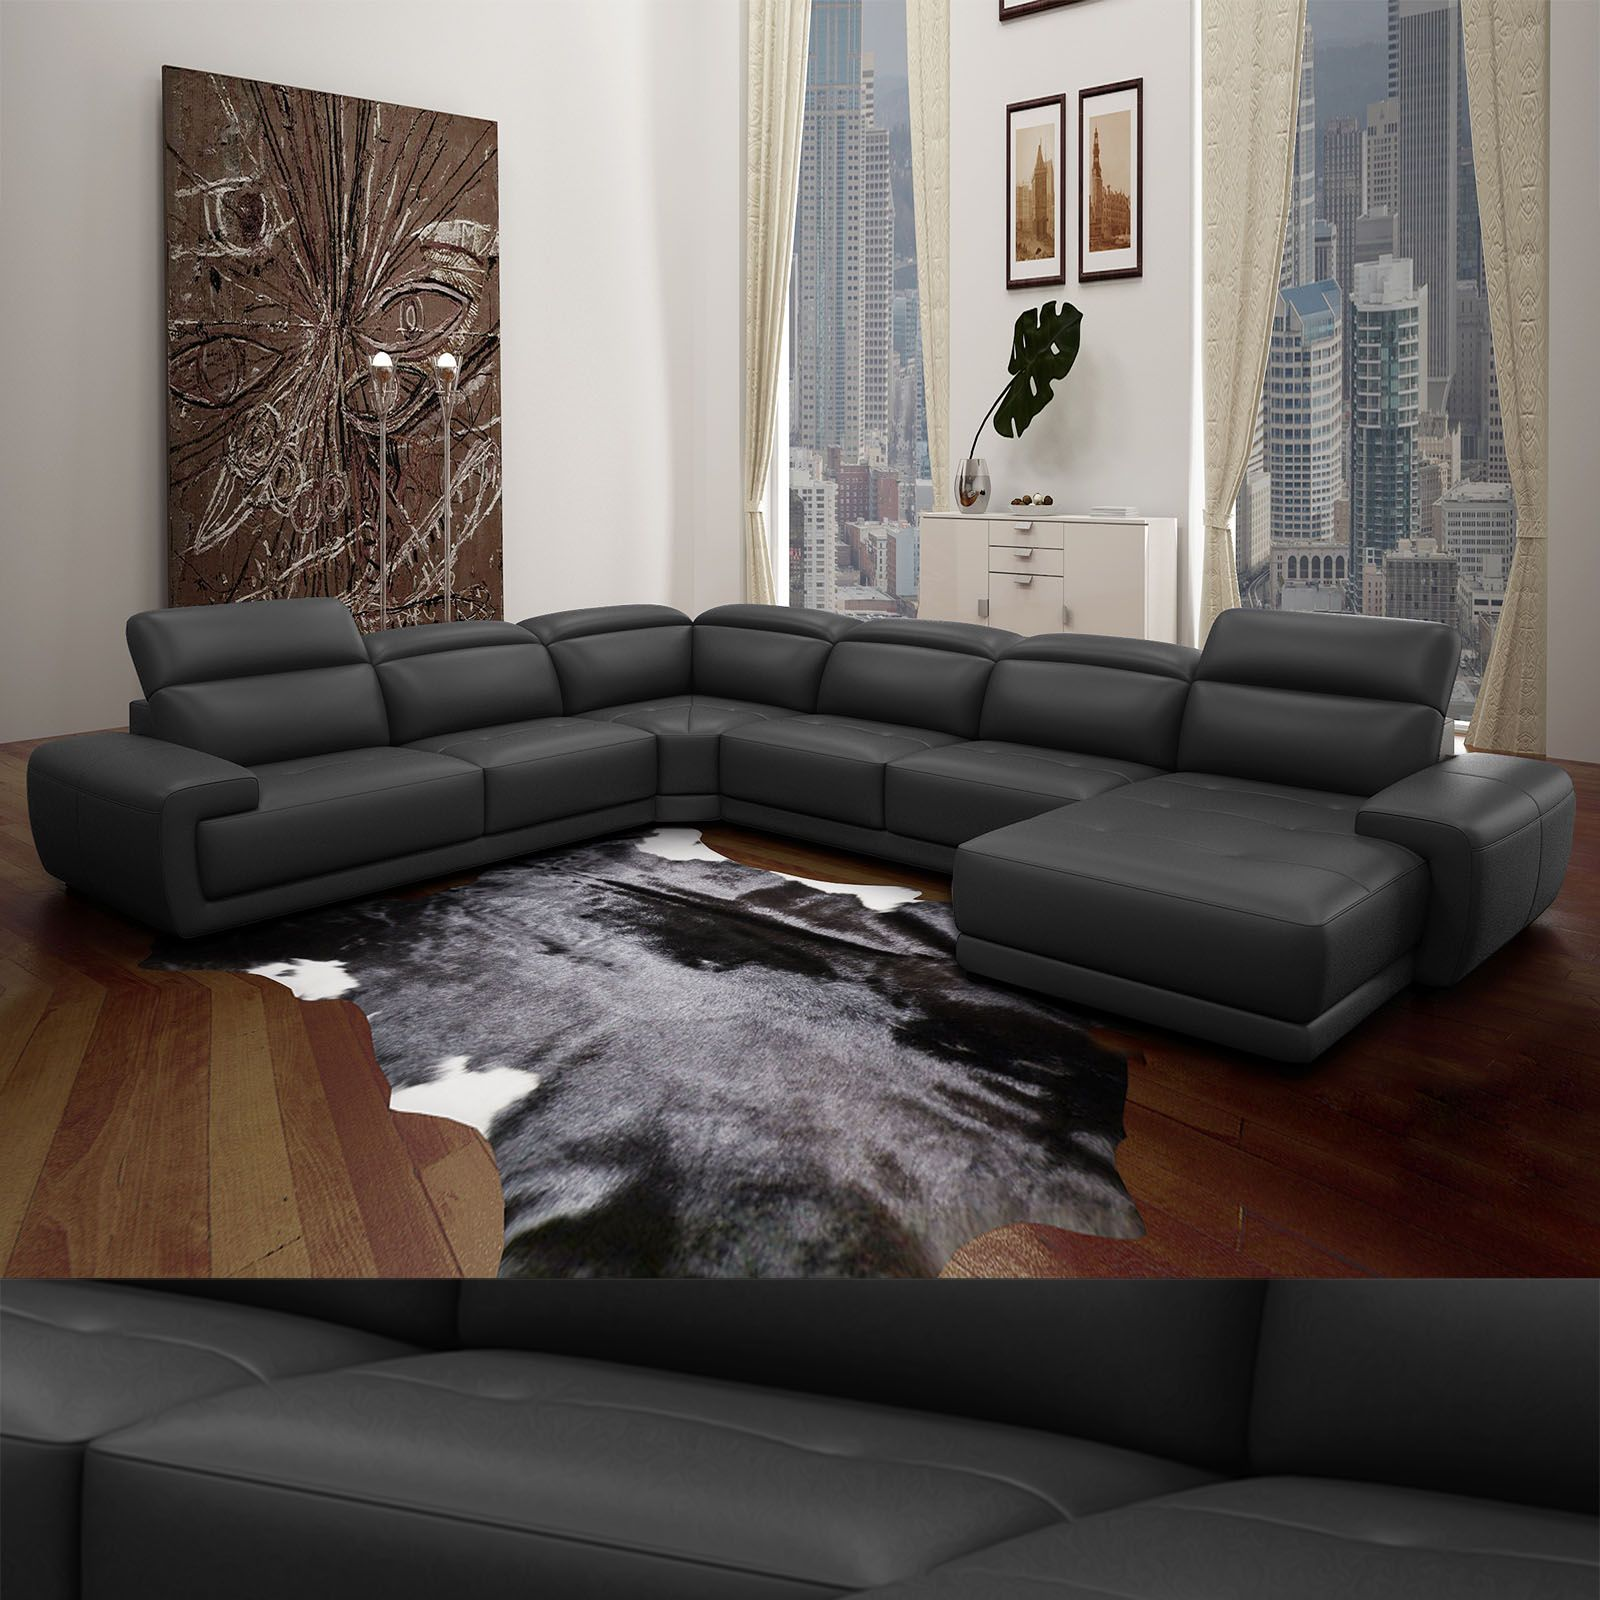 echt leder wohnlandschaft nelson sofa in u form und verstellbaren kopfst tzen schwarz modern. Black Bedroom Furniture Sets. Home Design Ideas